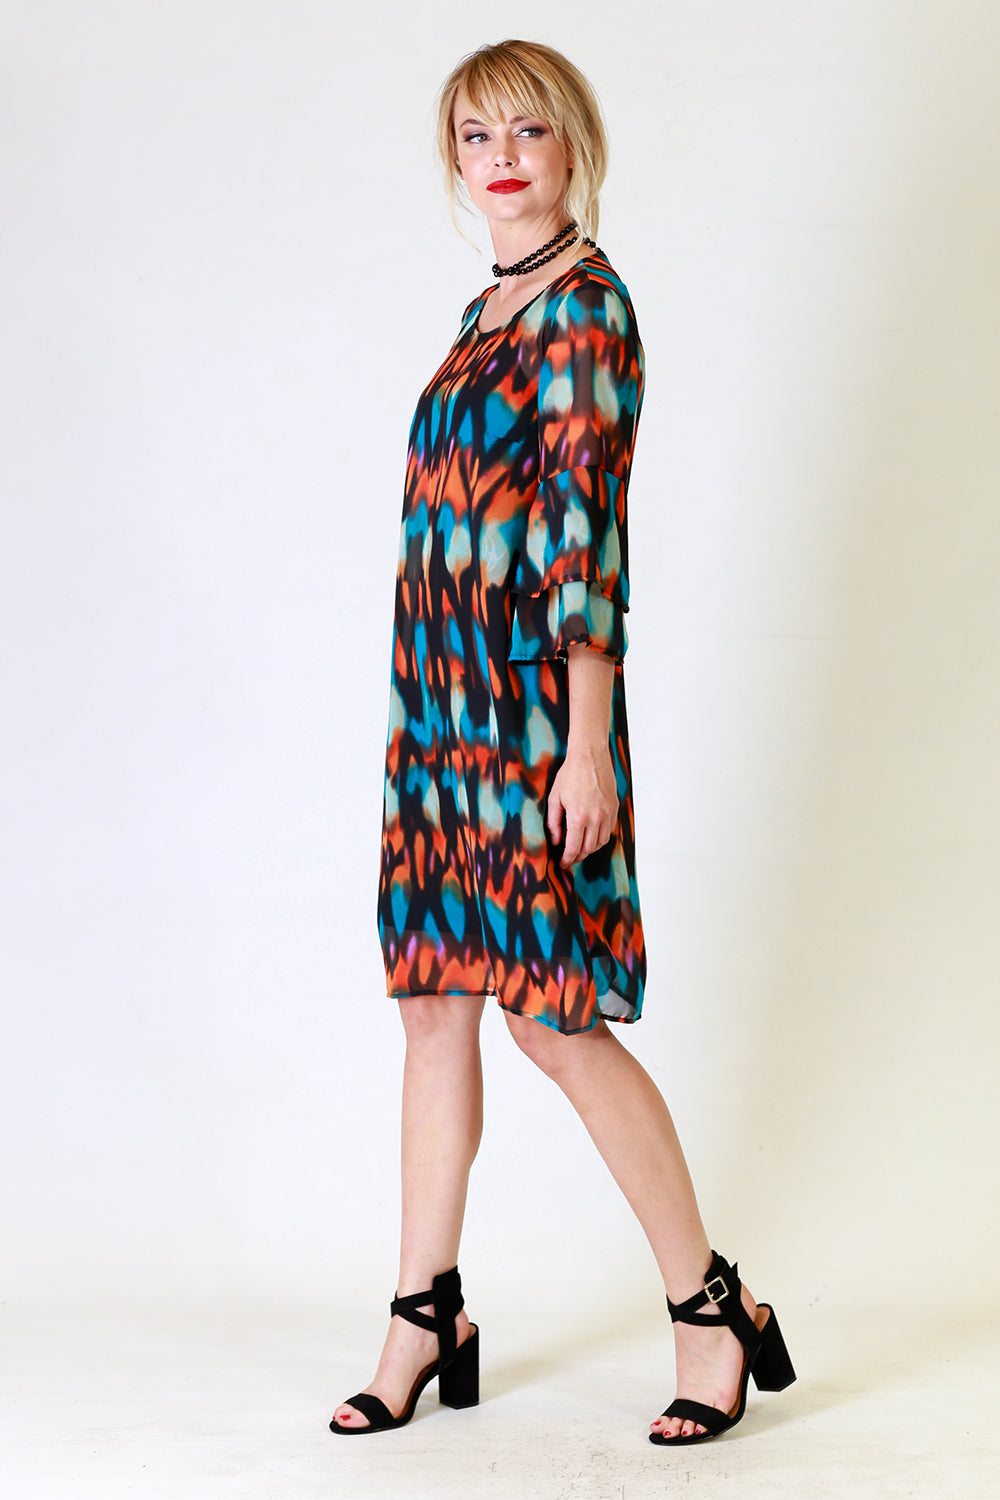 Katie Beth Dress